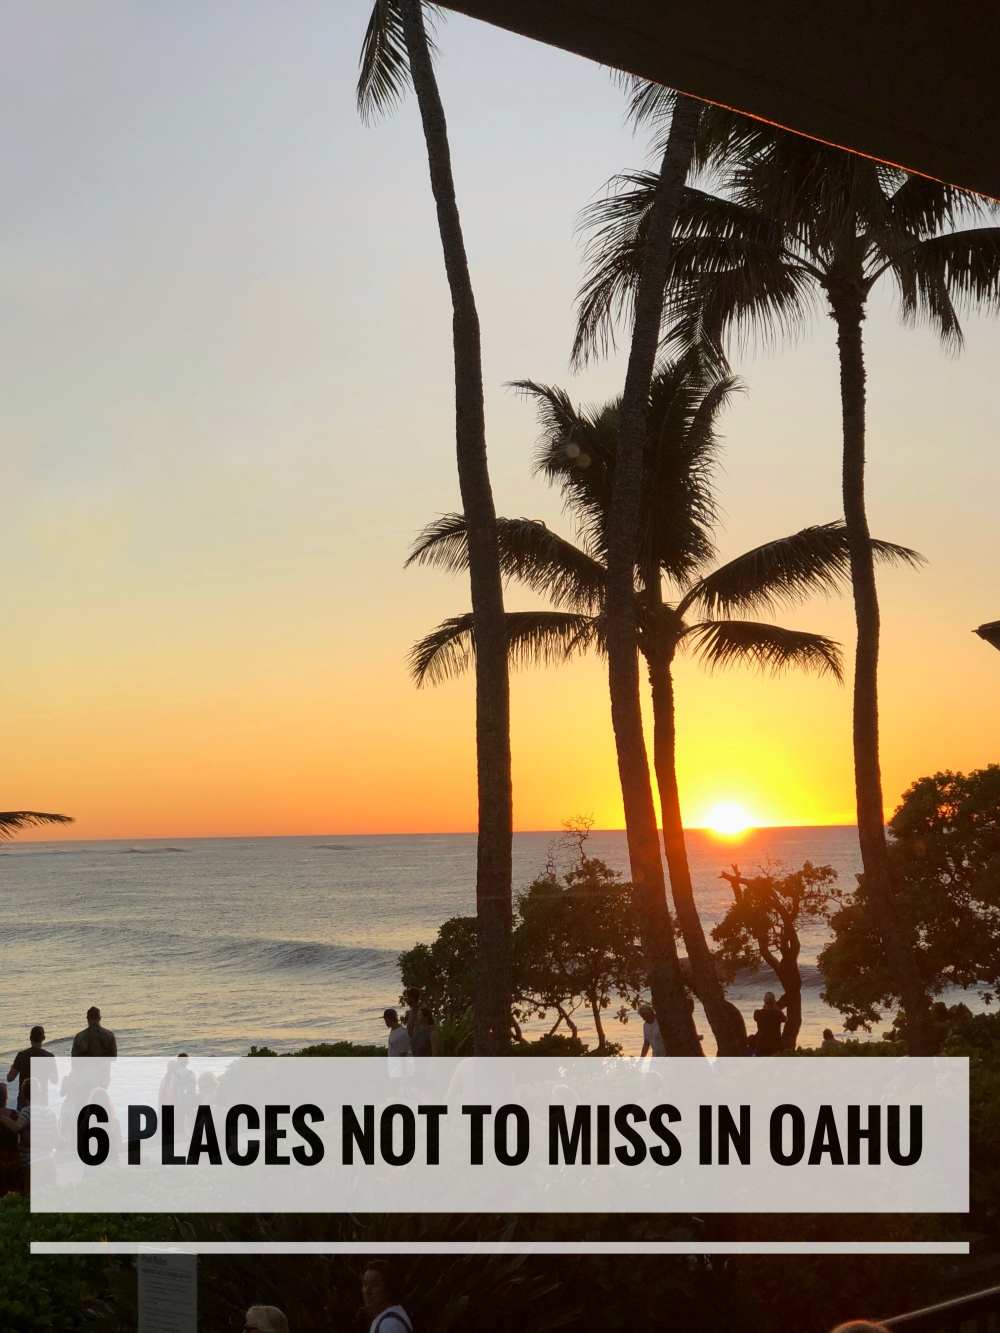 6 places not to miss in oahu